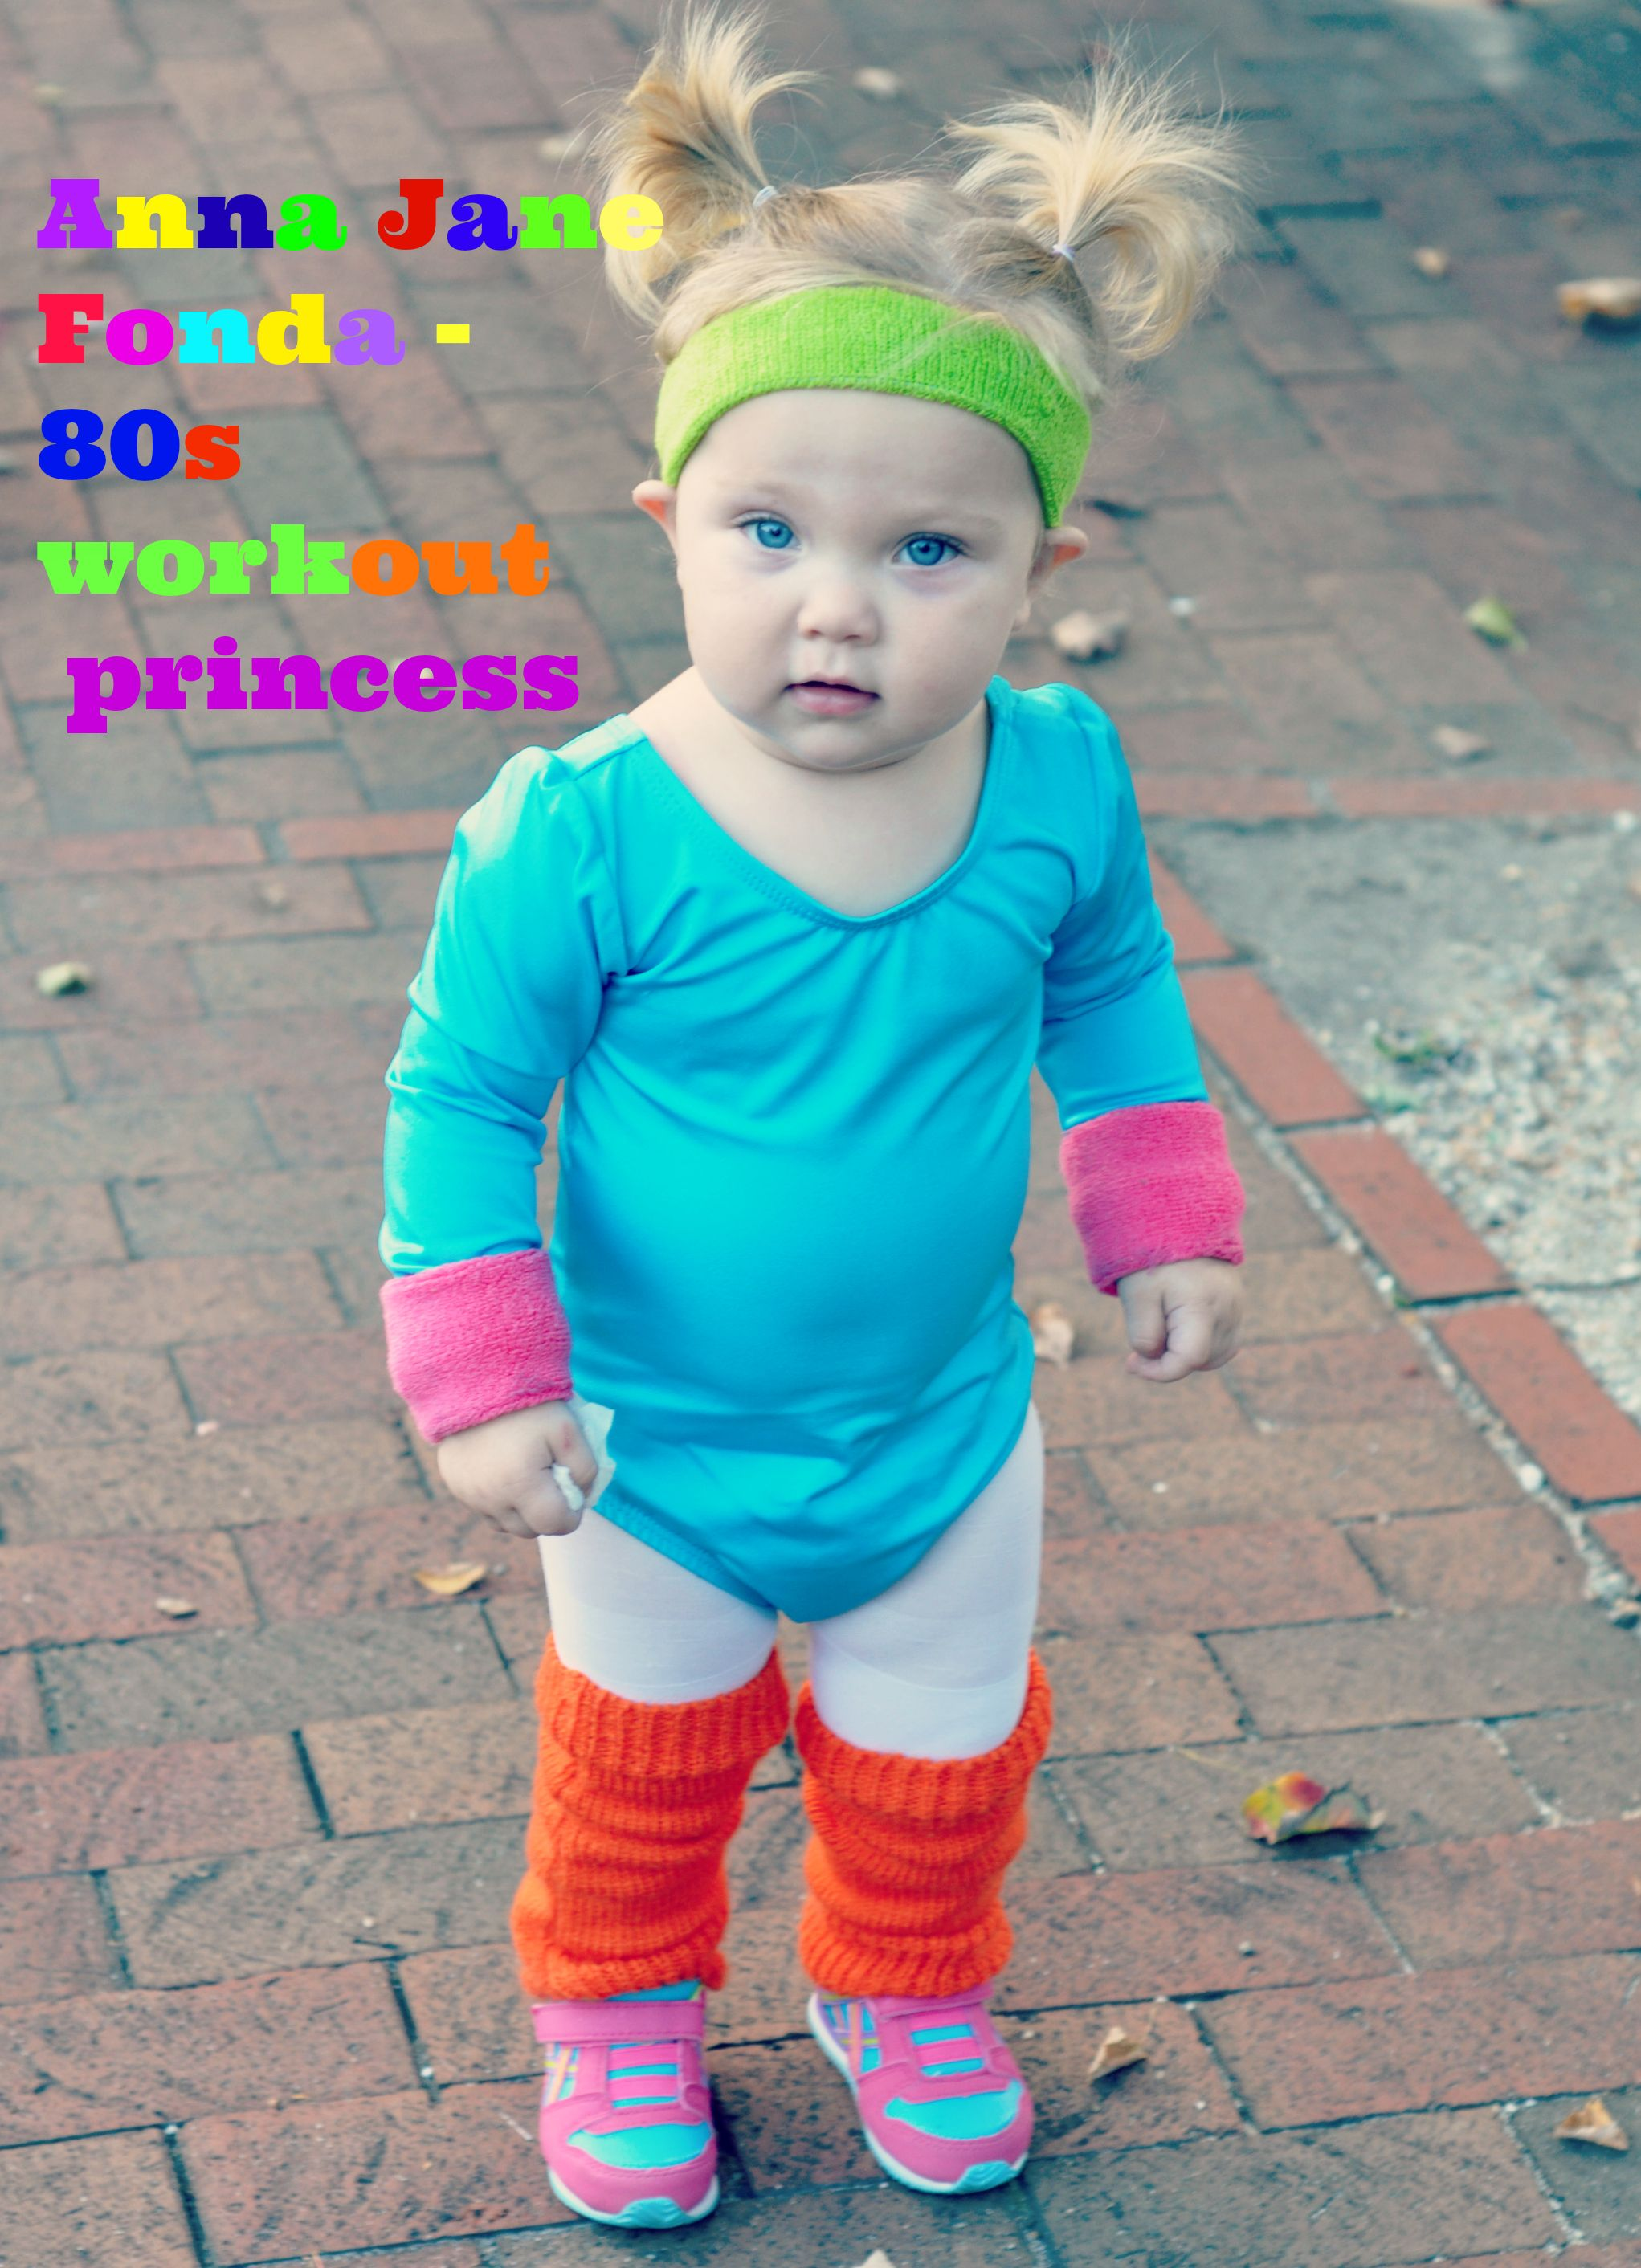 Cute Jane Fonda 80's Workout Costume for a Toddler | 80s workout ...